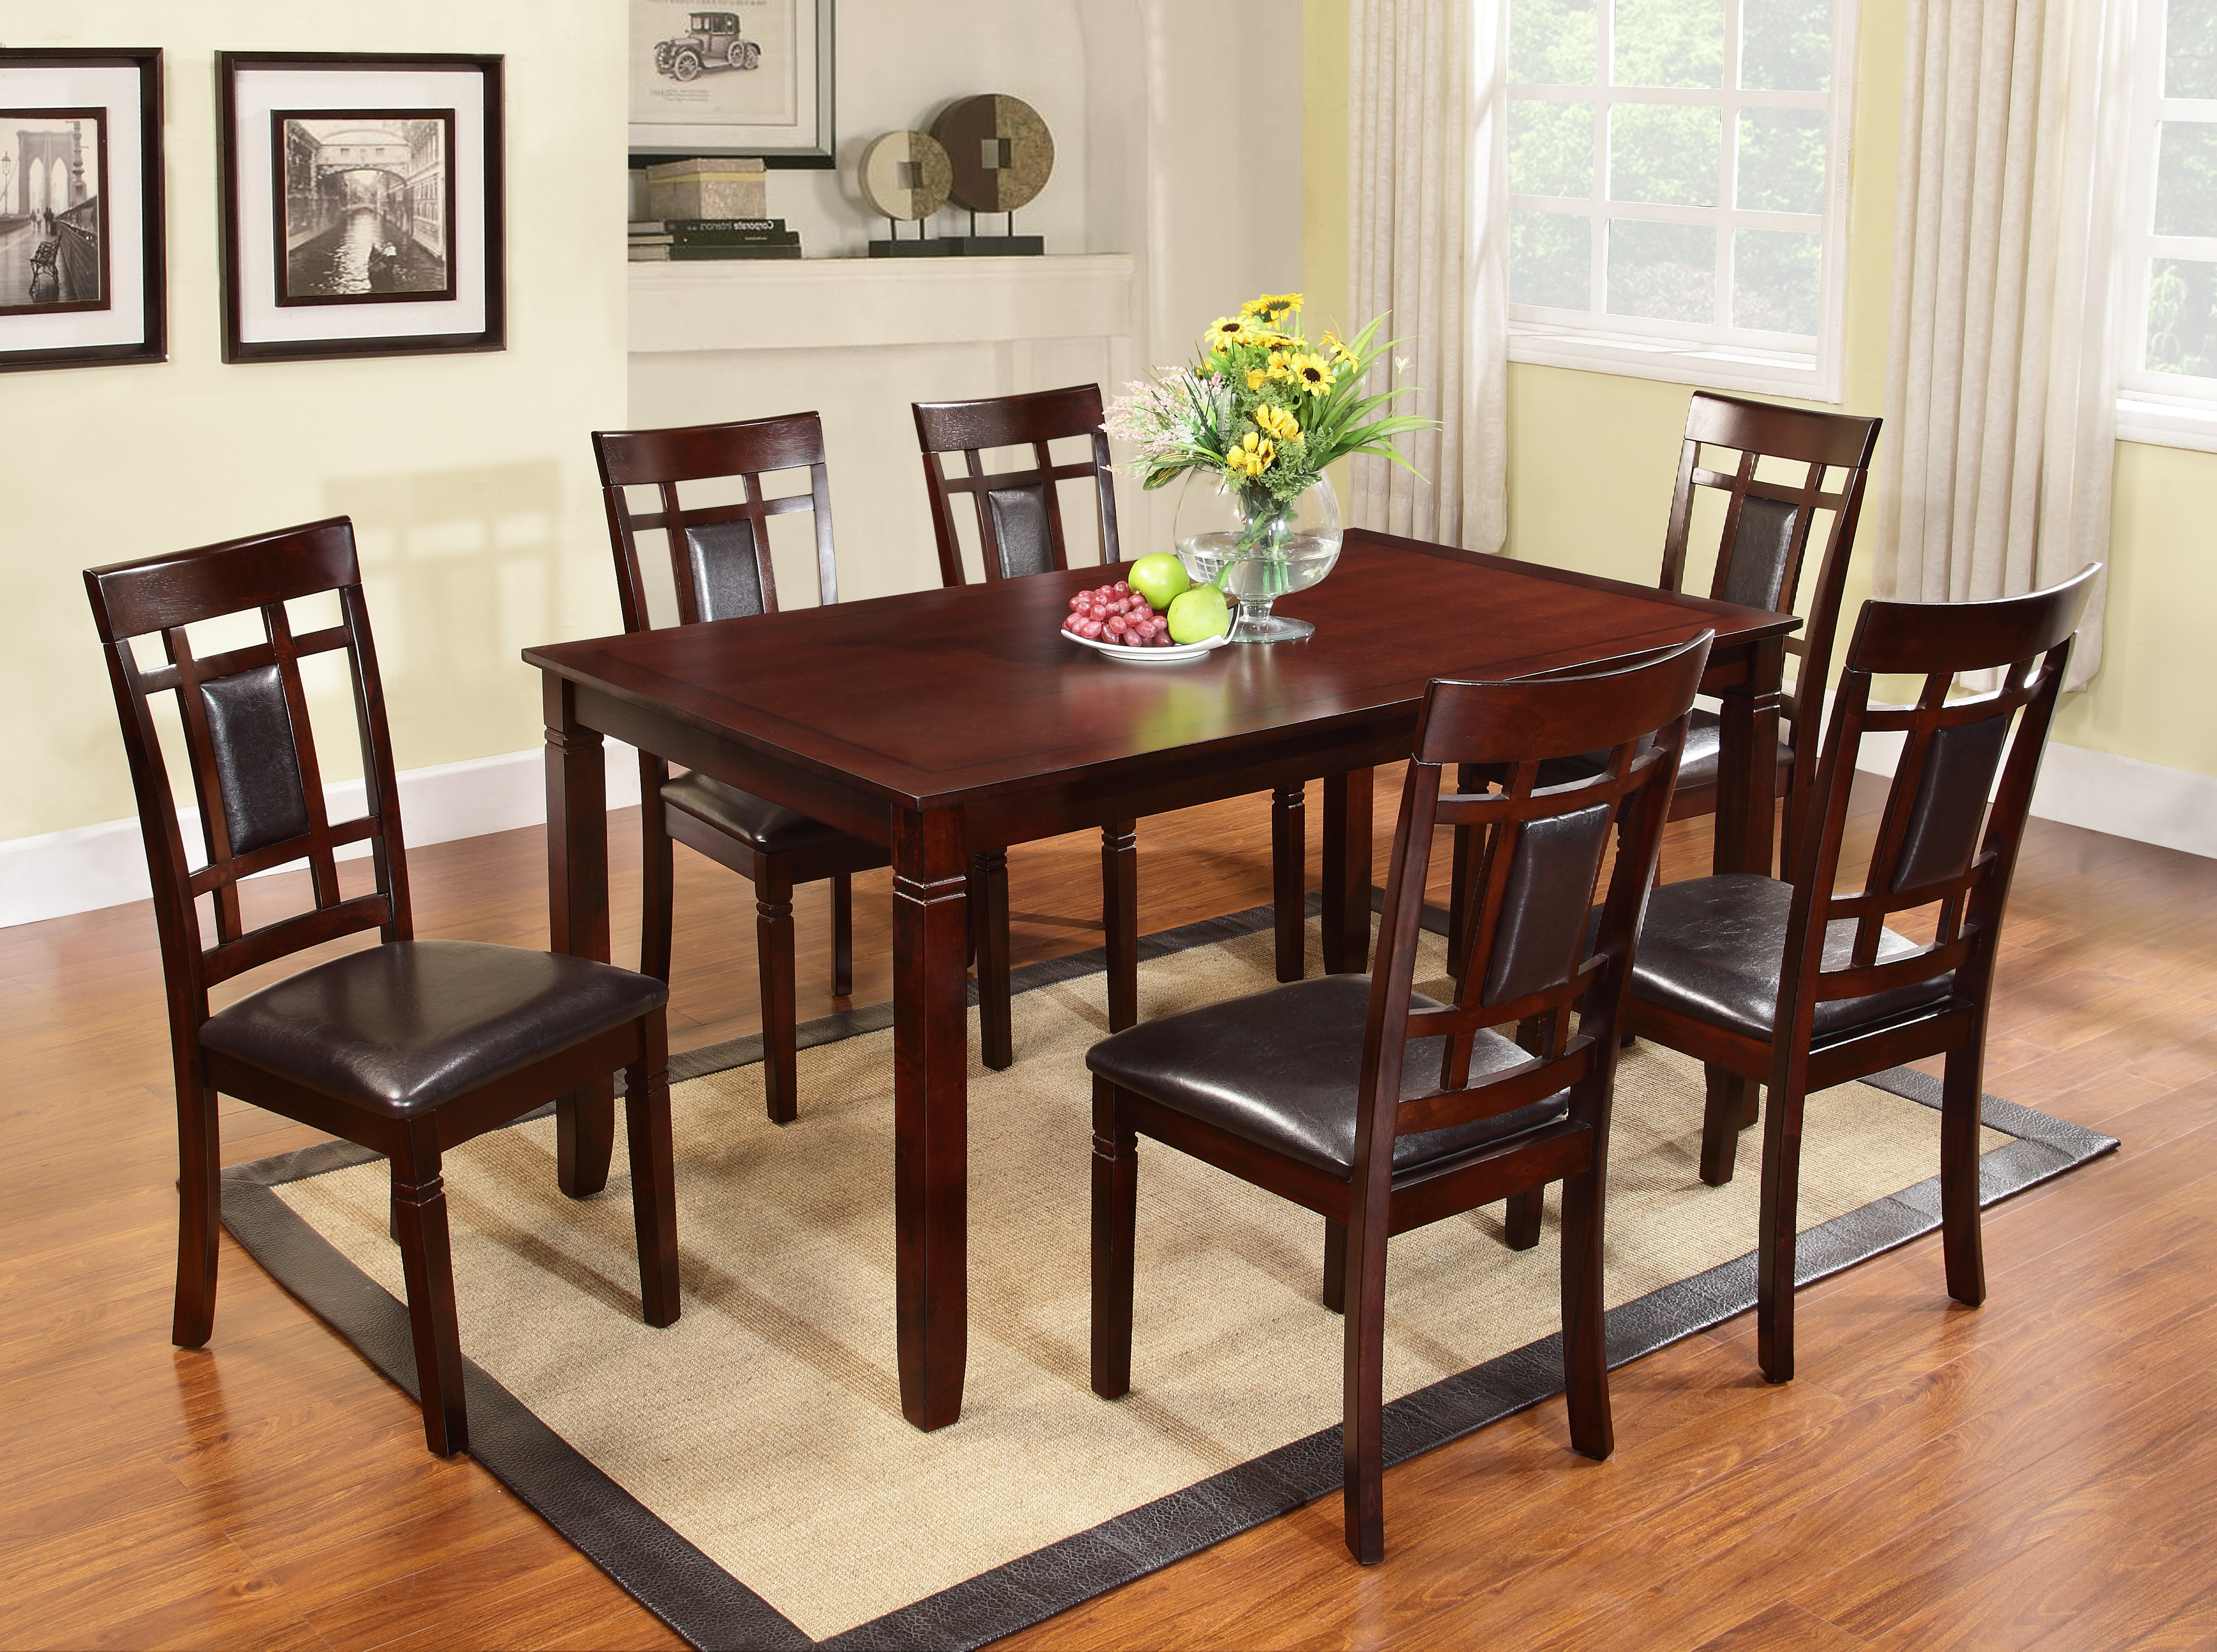 Wayfair Intended For 2019 Ligon 3 Piece Breakfast Nook Dining Sets (View 20 of 25)